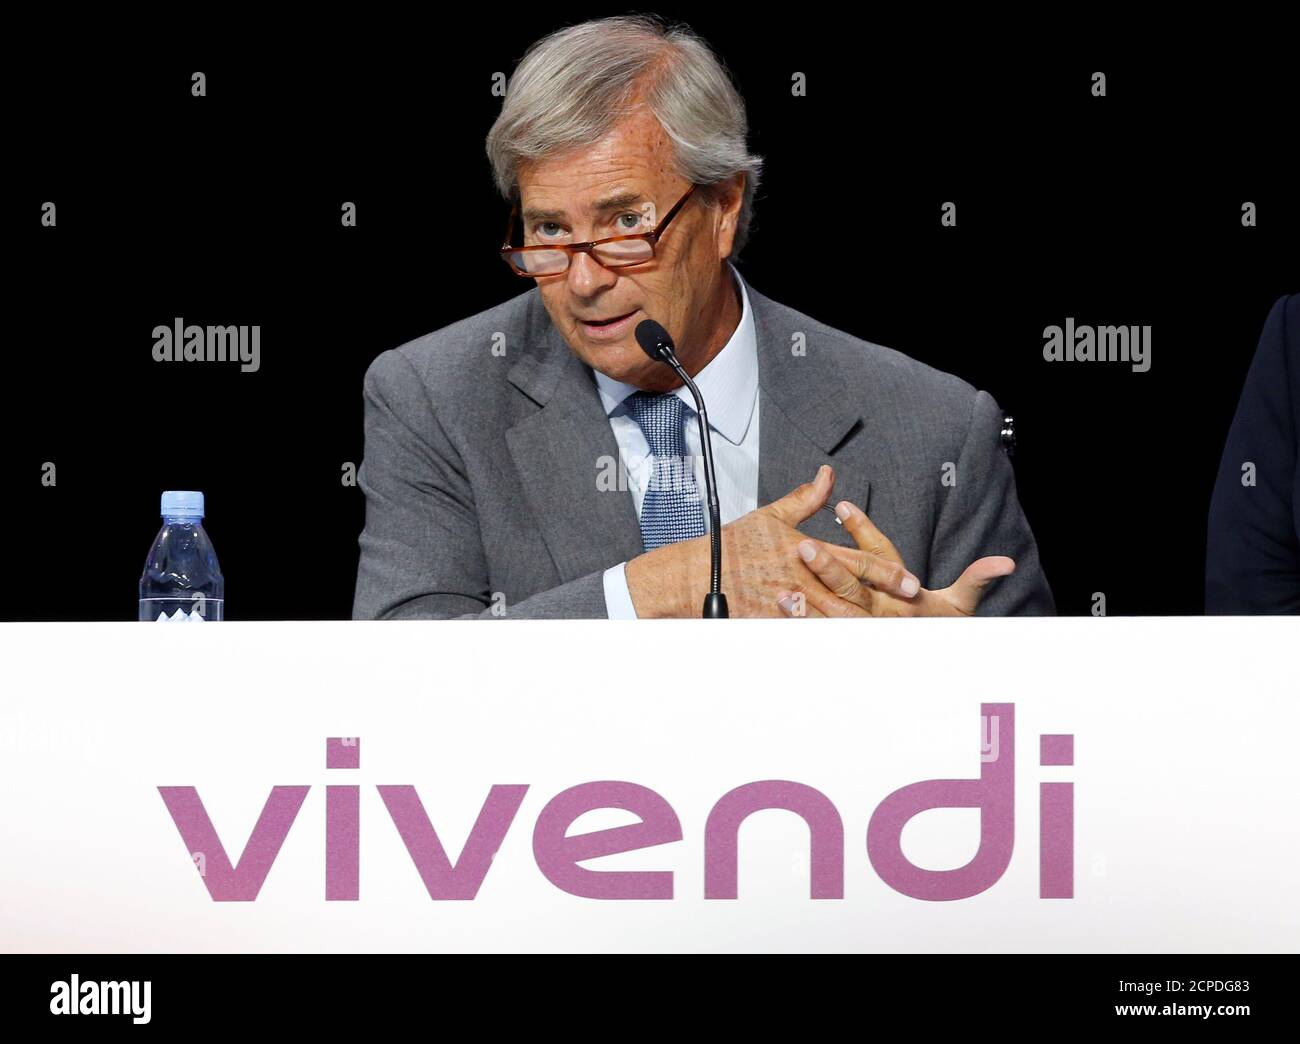 Vincent Bollore, Chairman of media group Vivendi, attends the company's shareholders meeting in Paris, France, April 25, 2017.  REUTERS/Jean-Paul Pelissier Stock Photo